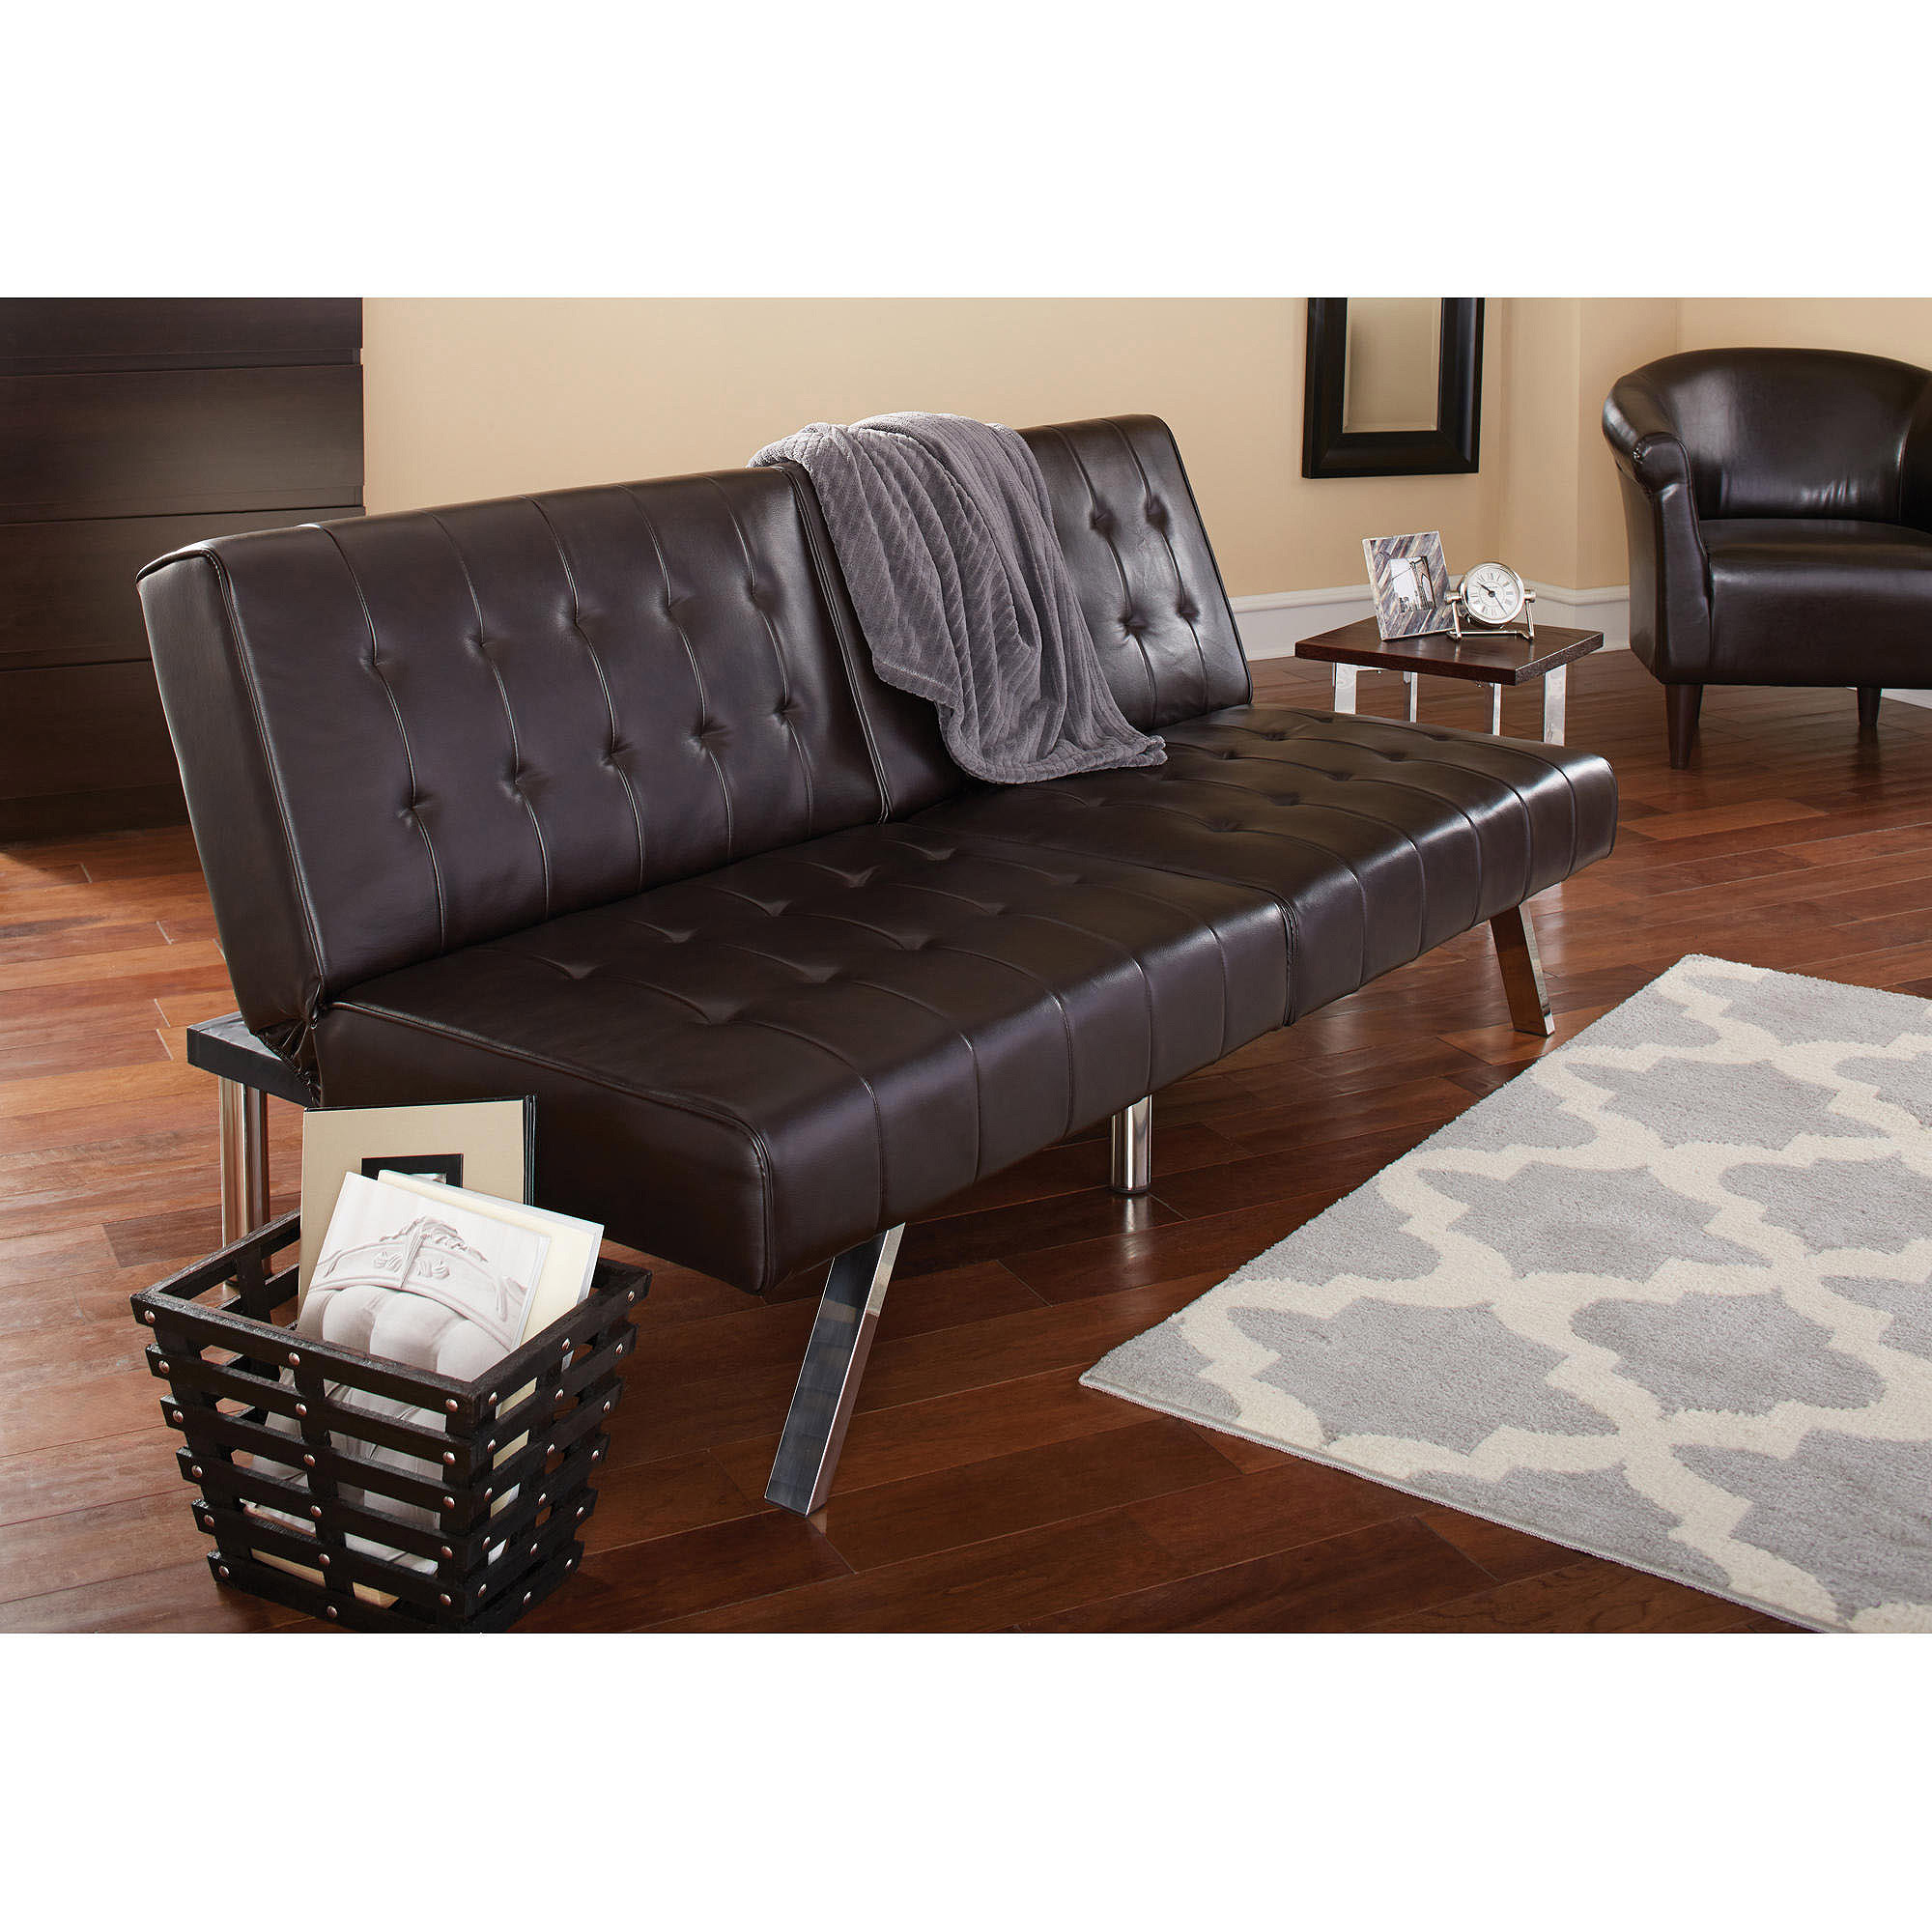 Mainstays Morgan Faux Leather Tufted Convertible Futon Brown Com